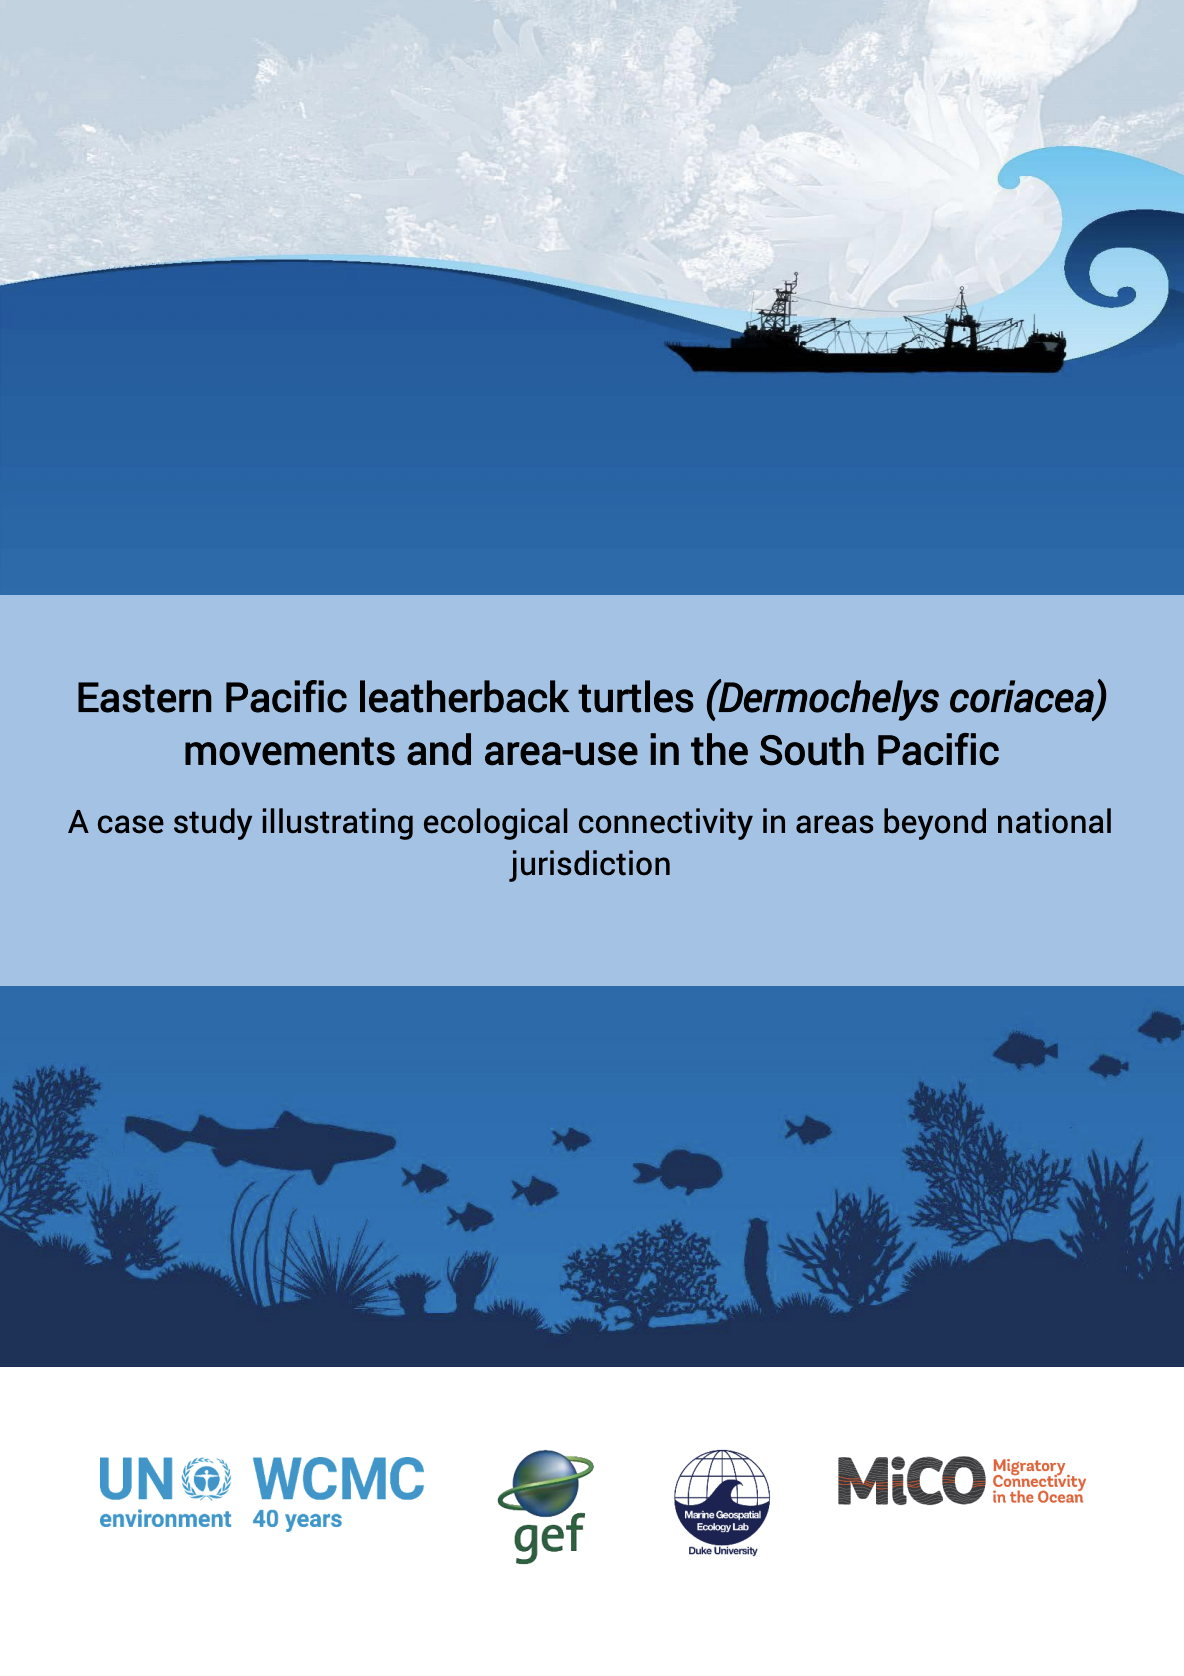 Eastern Pacific leatherback turtles (Dermochelys coriacea) movements and area-use in the South Pacific